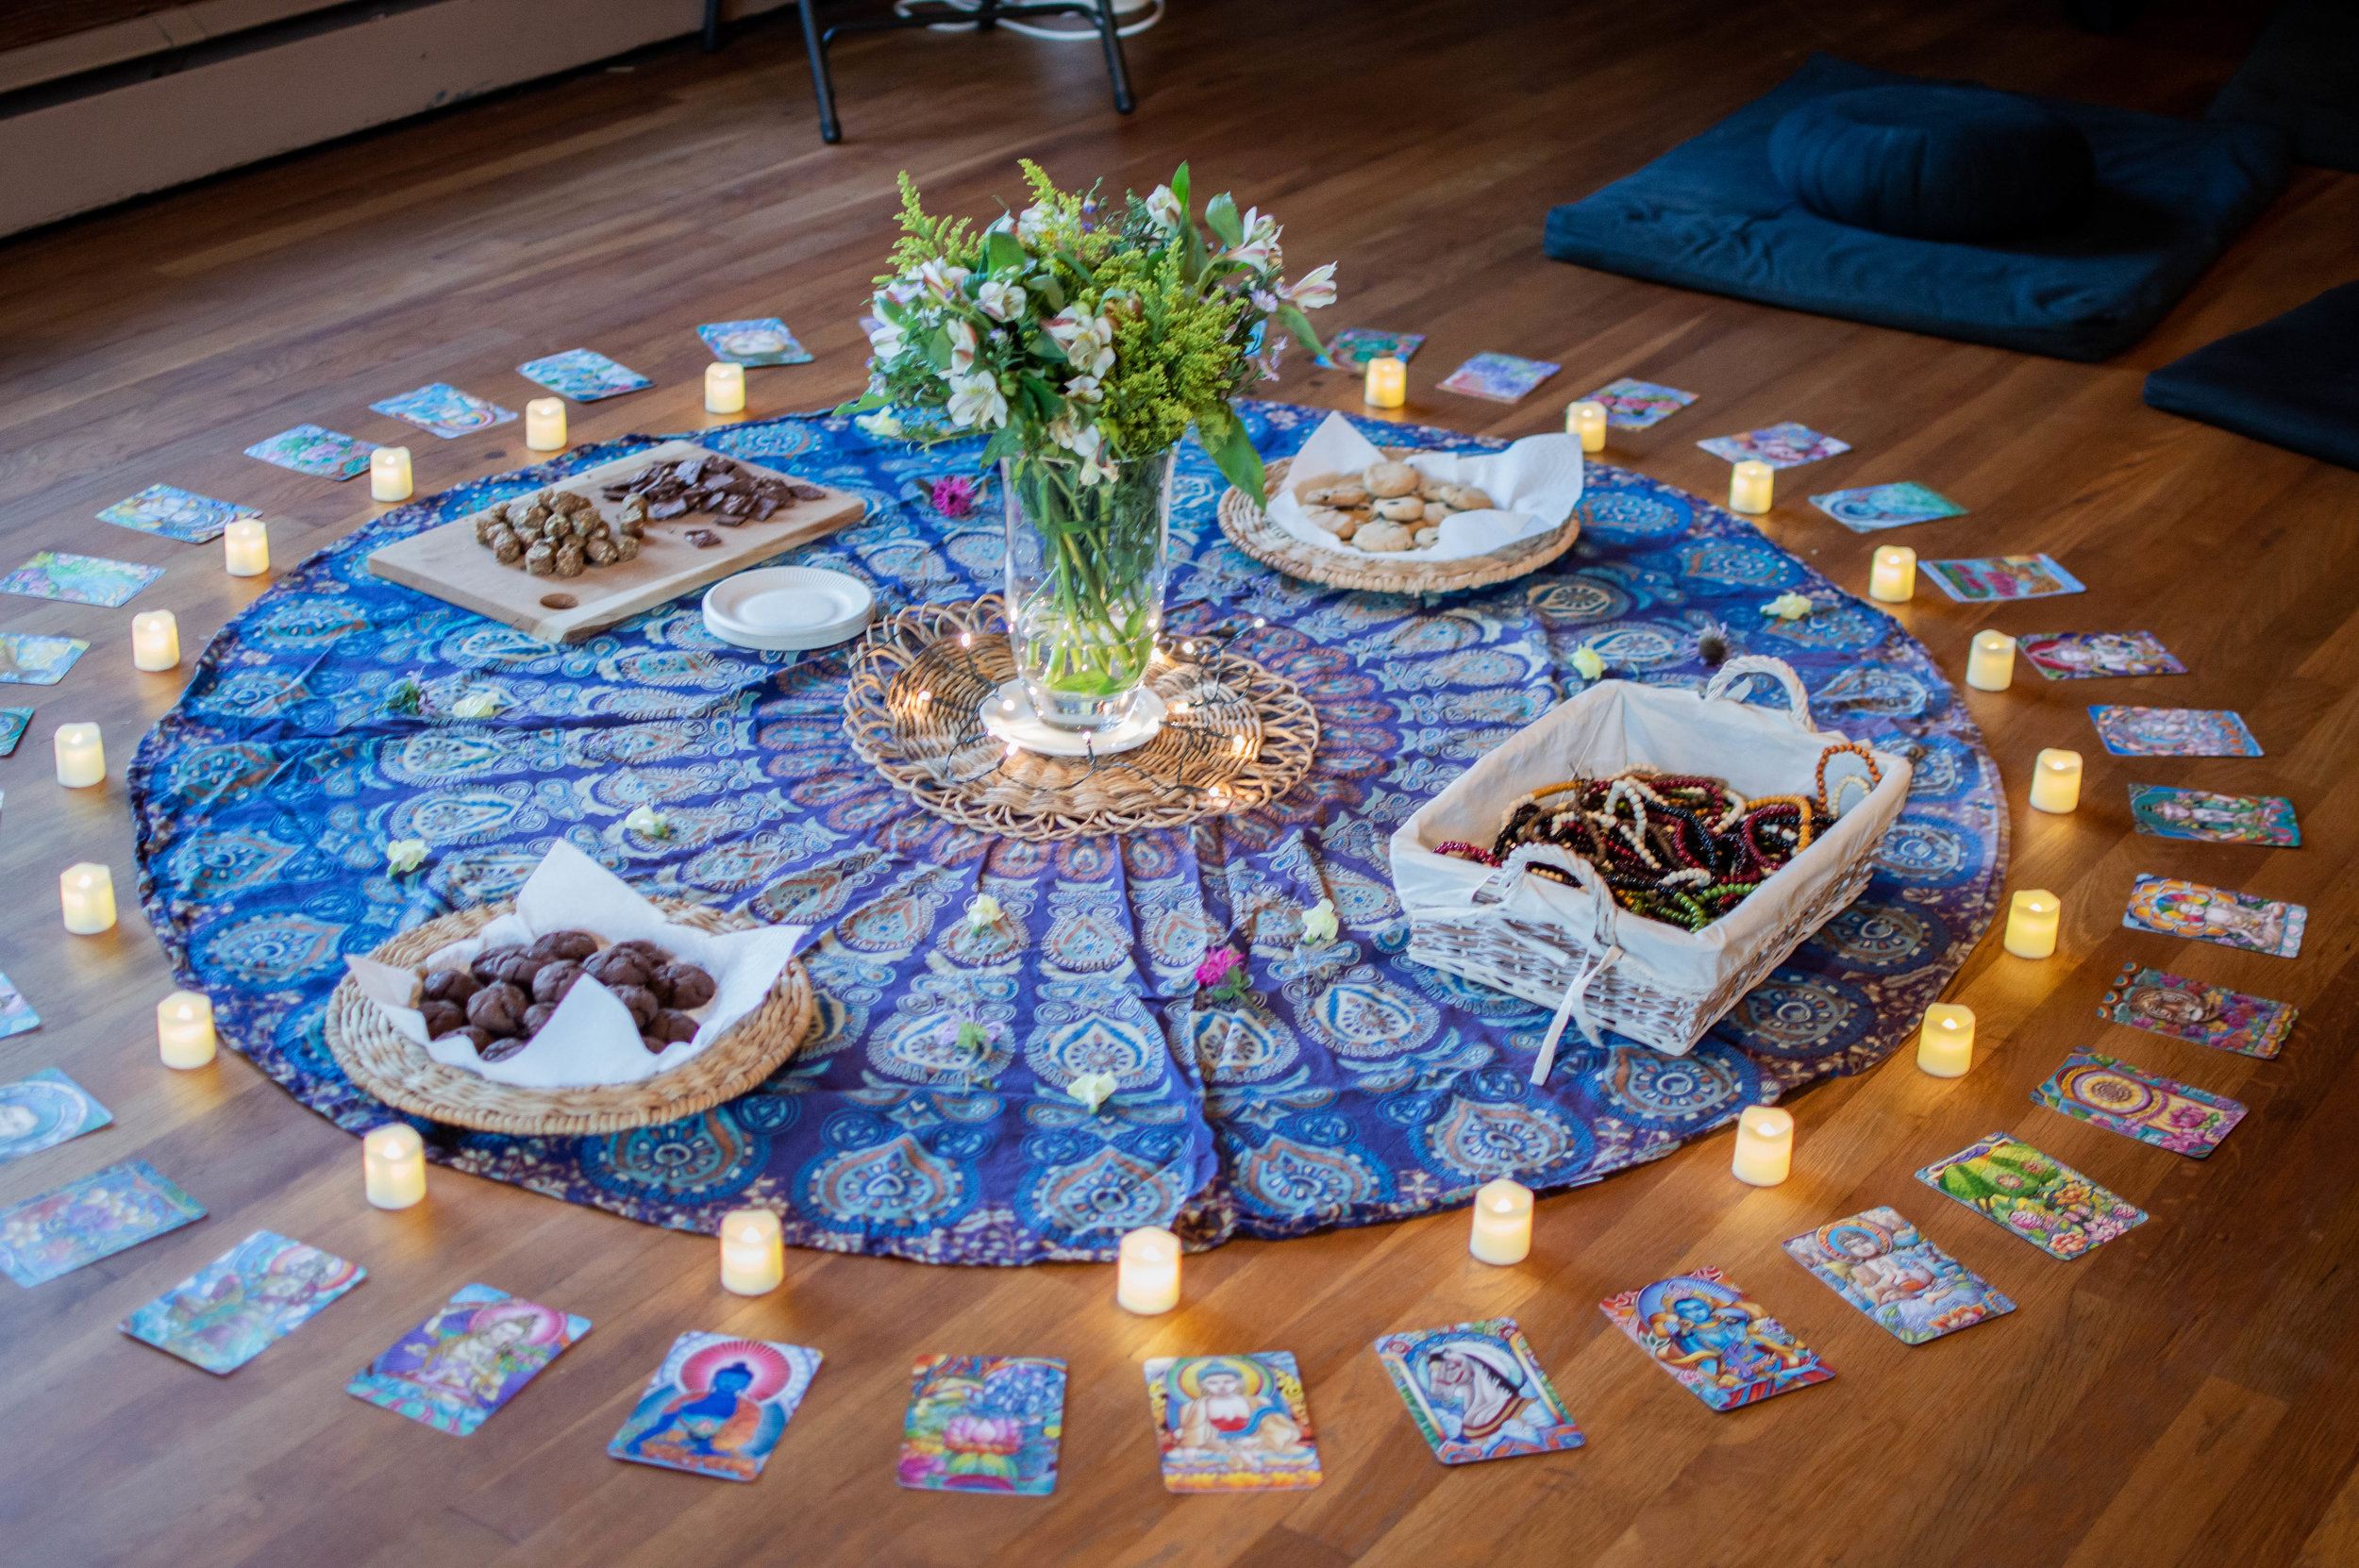 Arise-Retreat-Altar-Intuition-Lab-Kim-Chestney.jpg